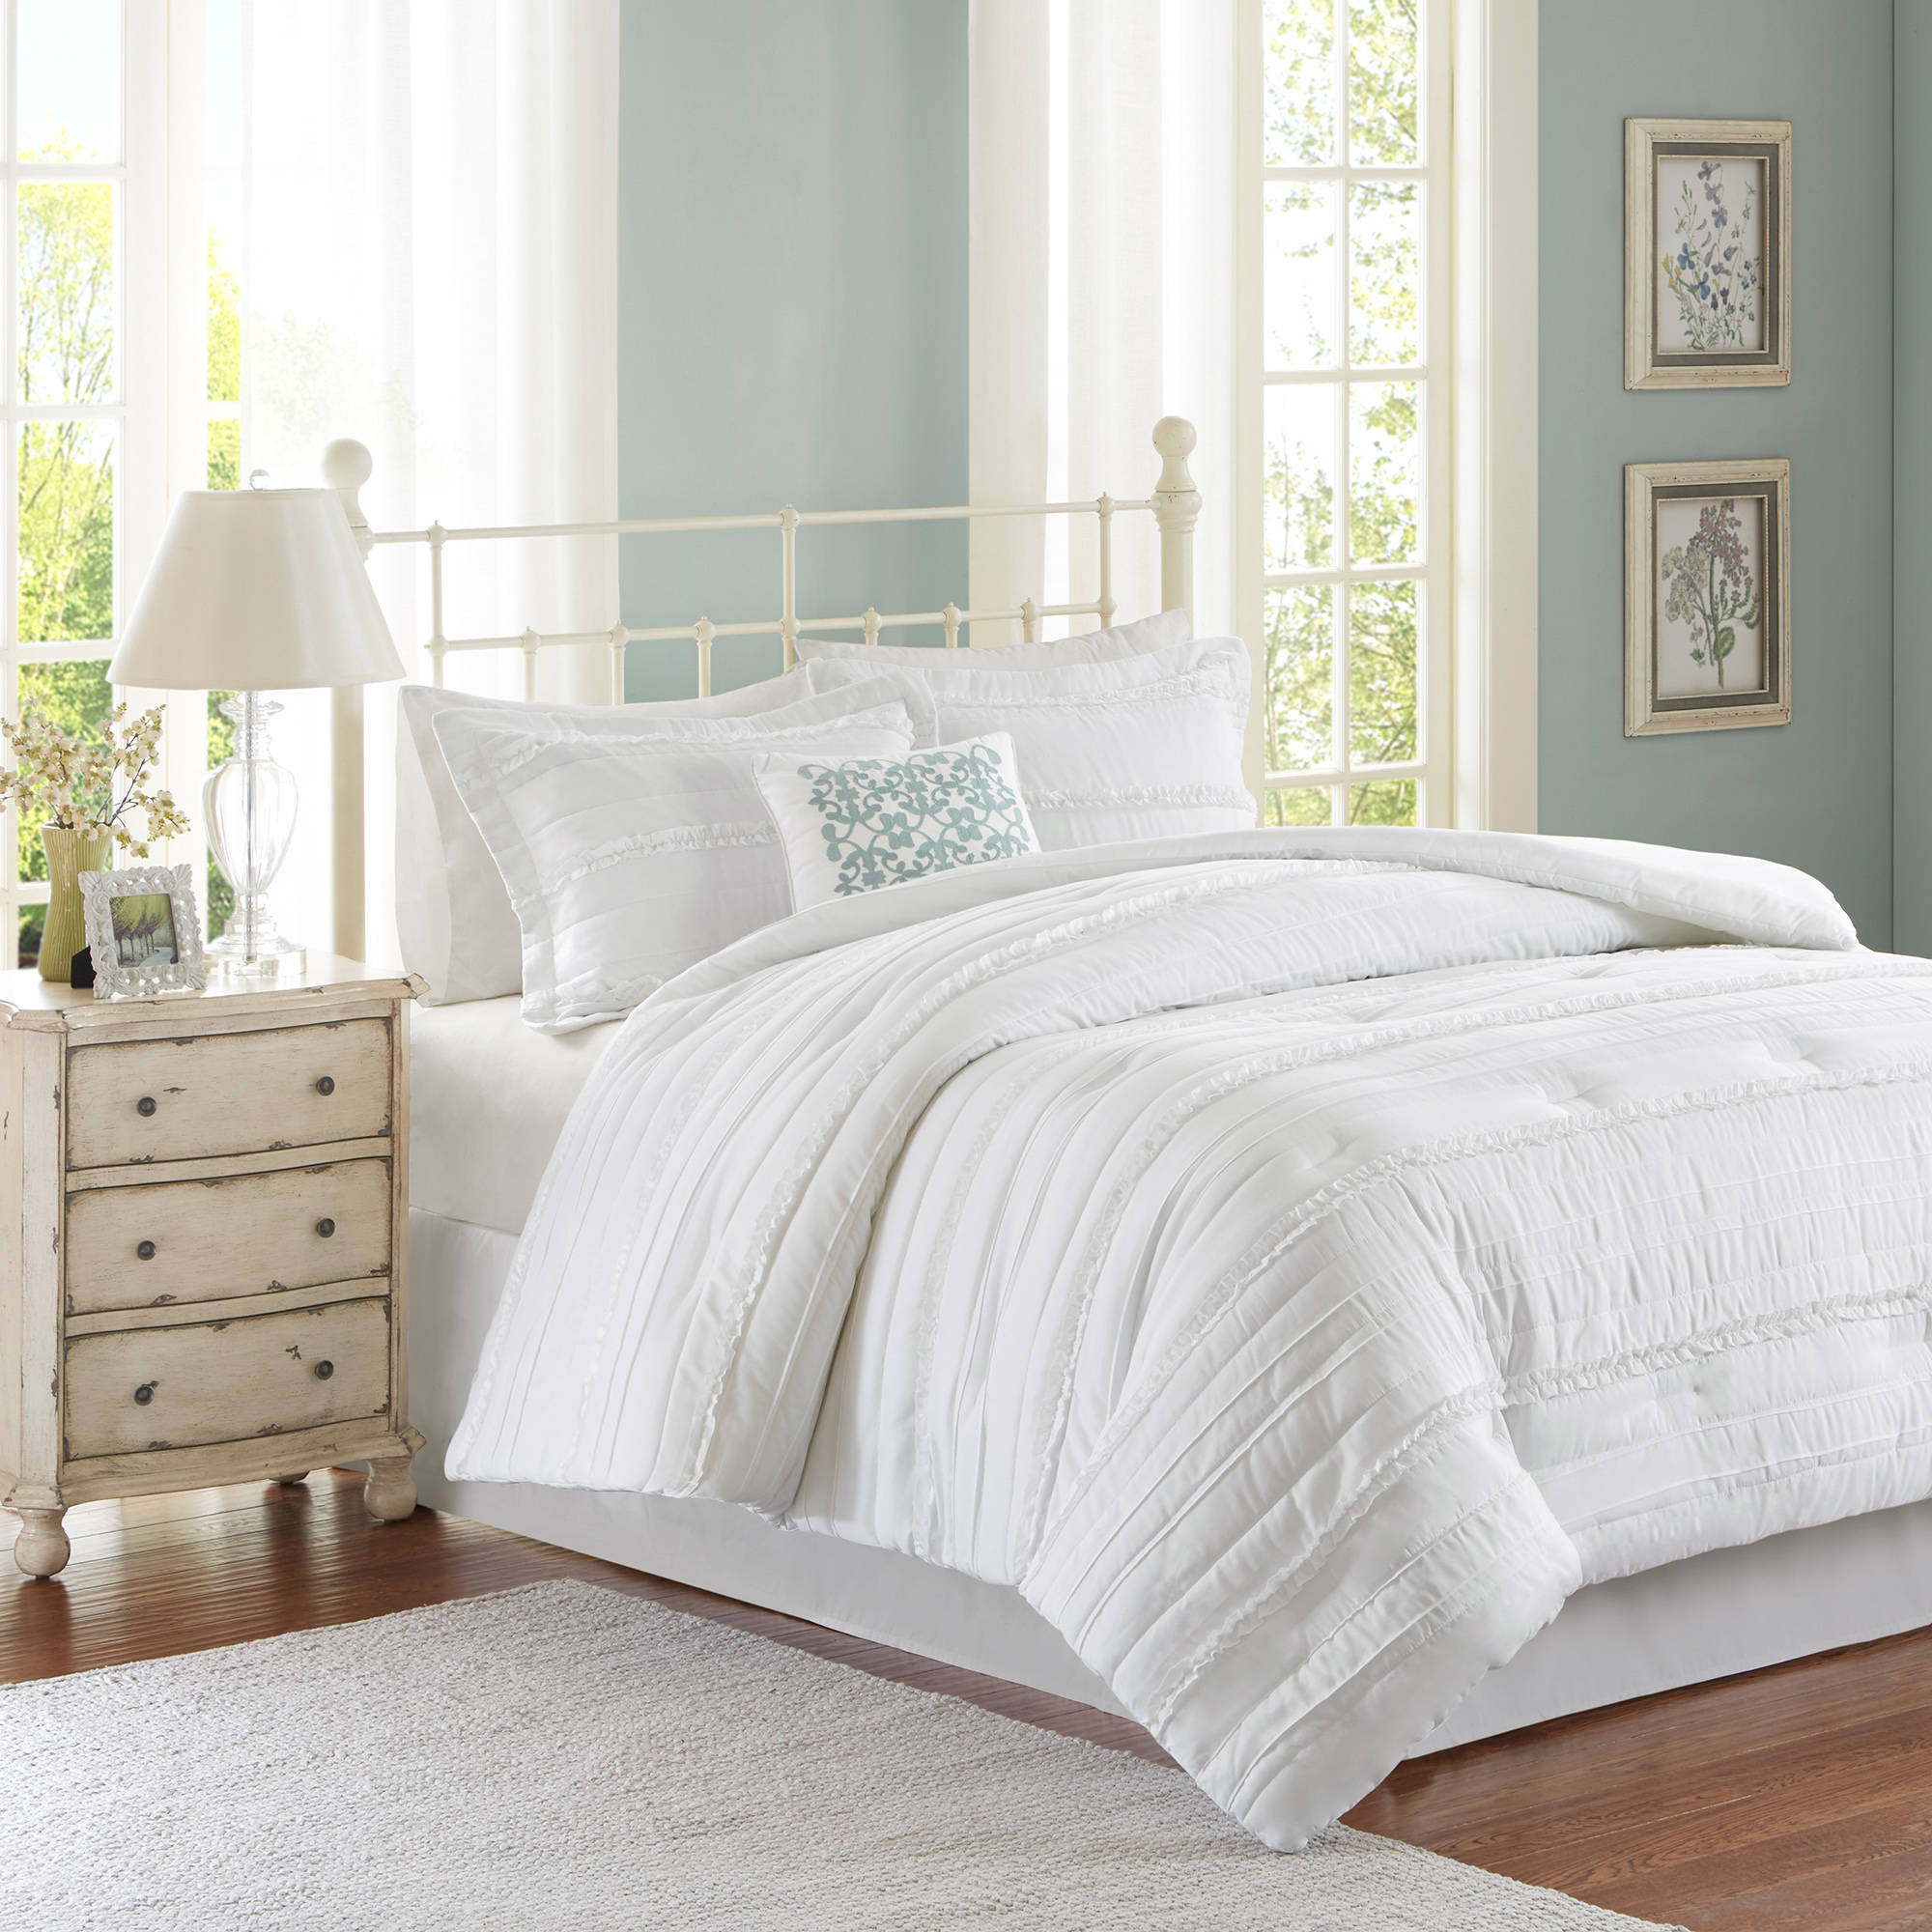 white king quilt home essence 5 quilted comforter bedding set 1031